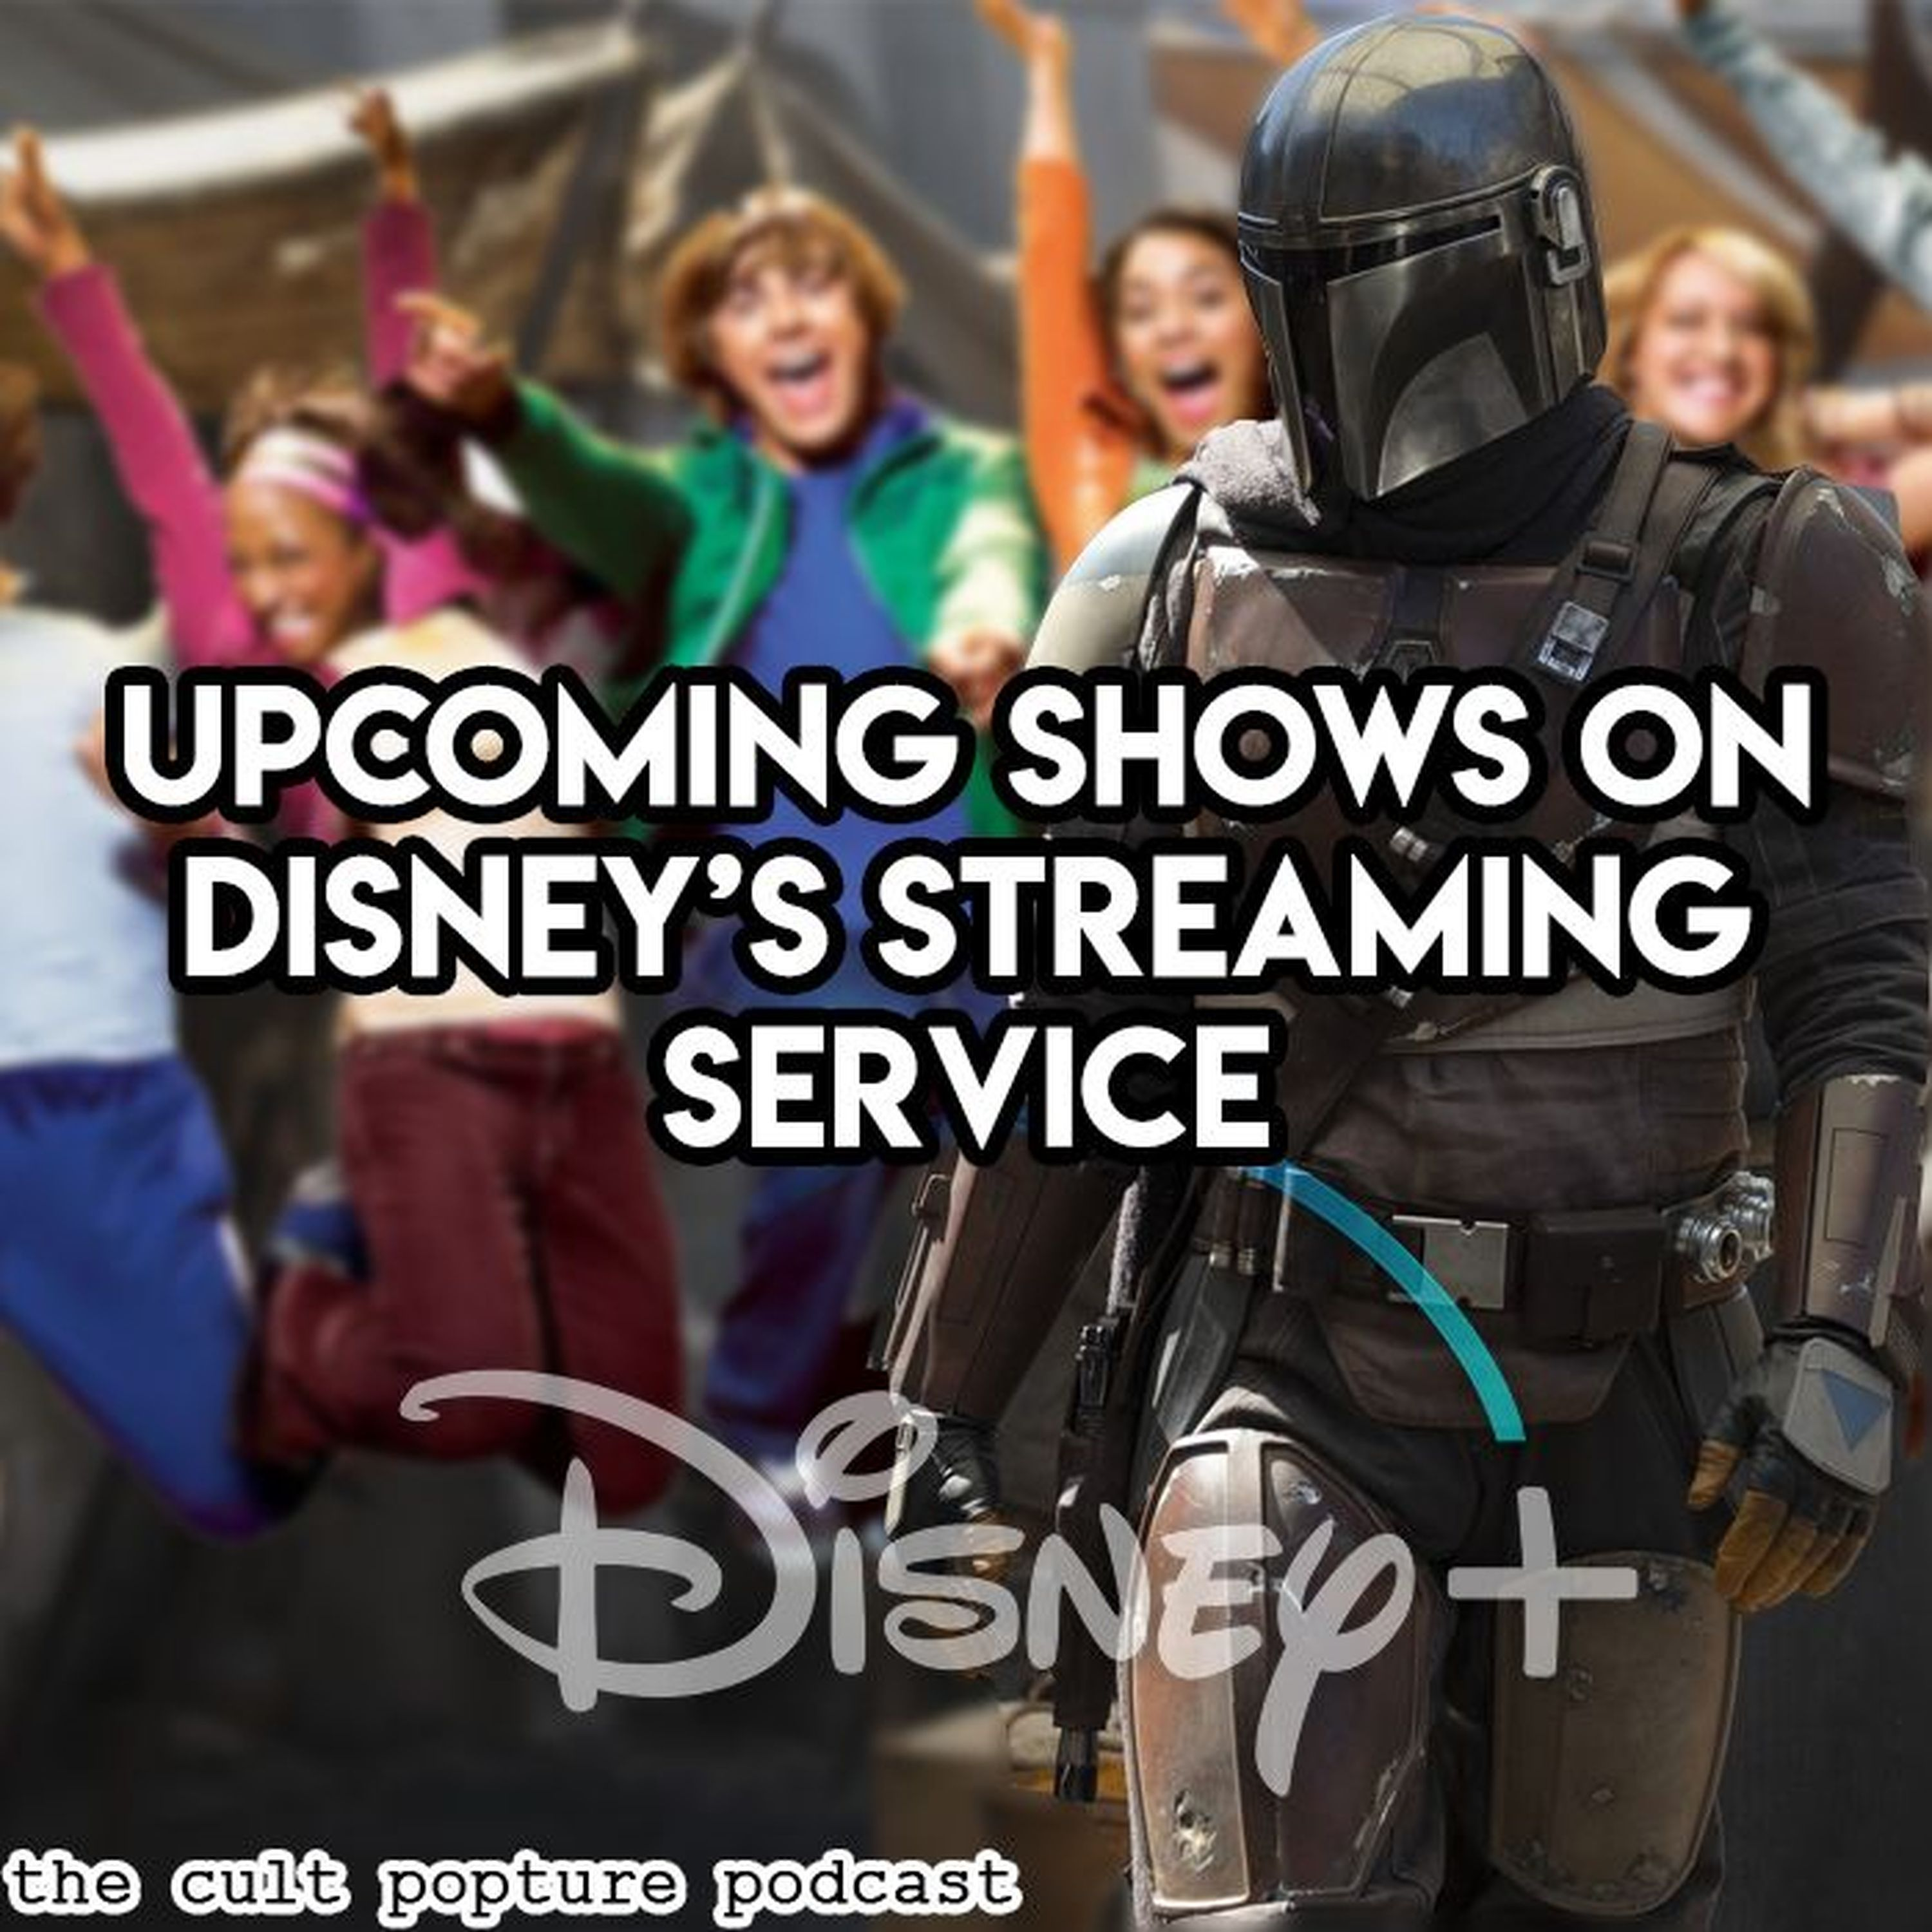 Disney's Streaming Service: All the Upcoming Shows and